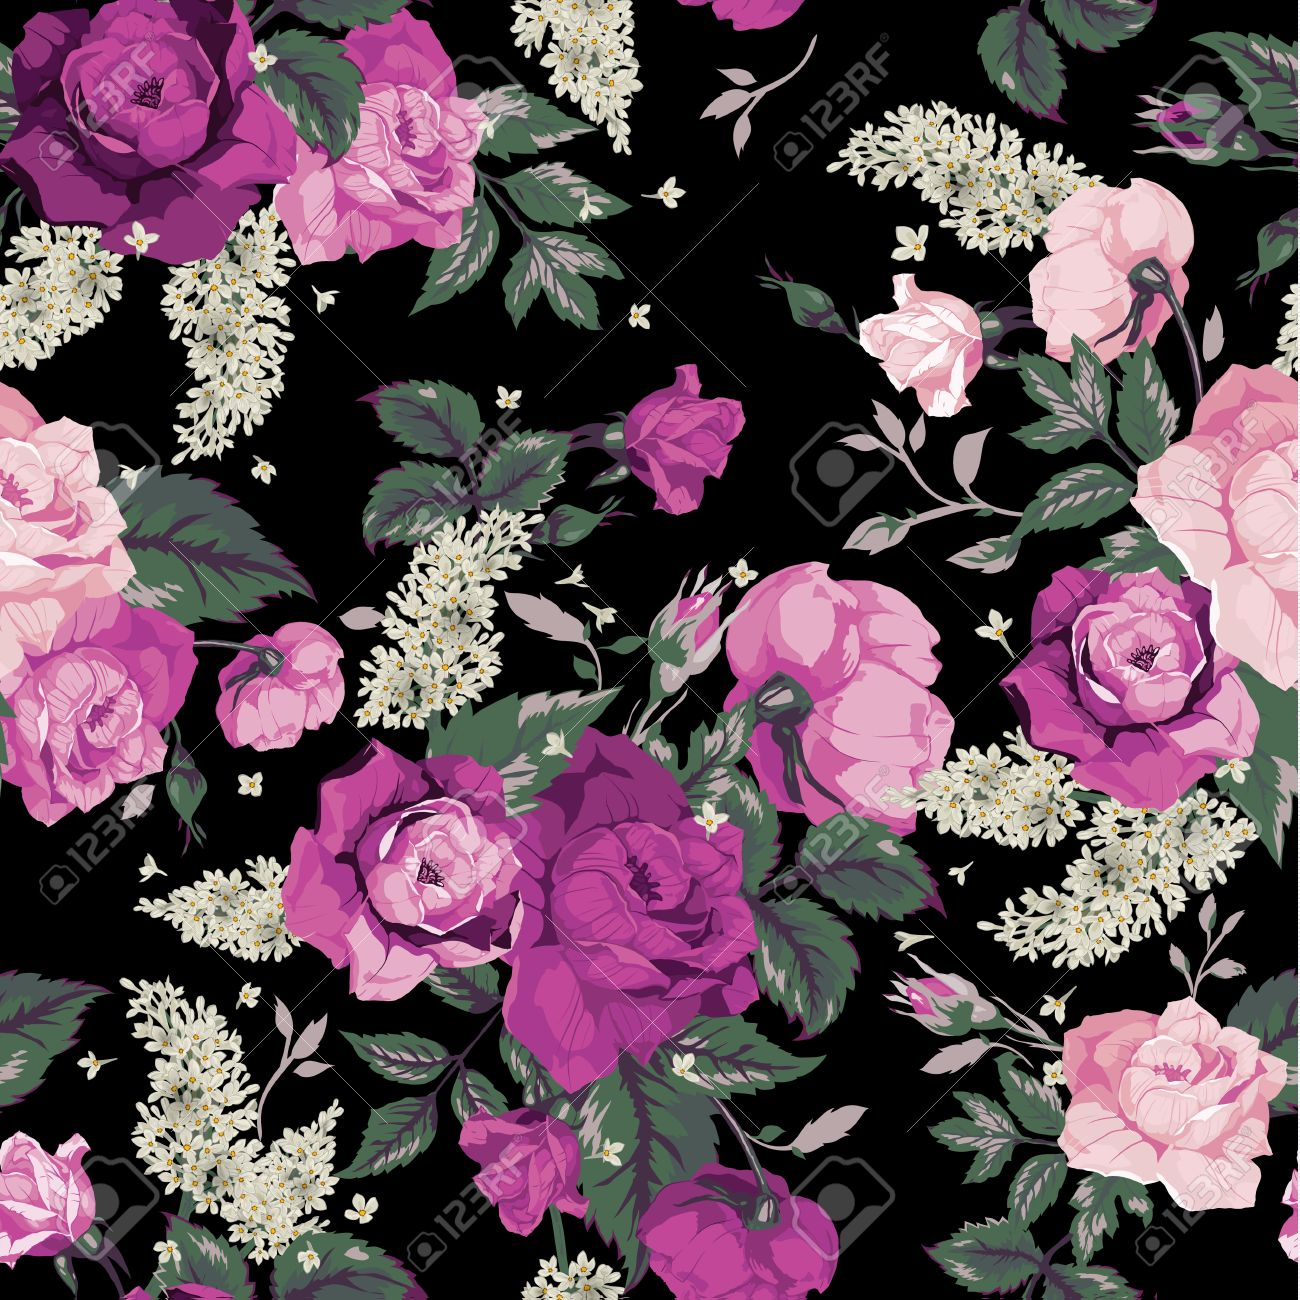 Seamless Floral Pattern With Pink Roses On Black Background